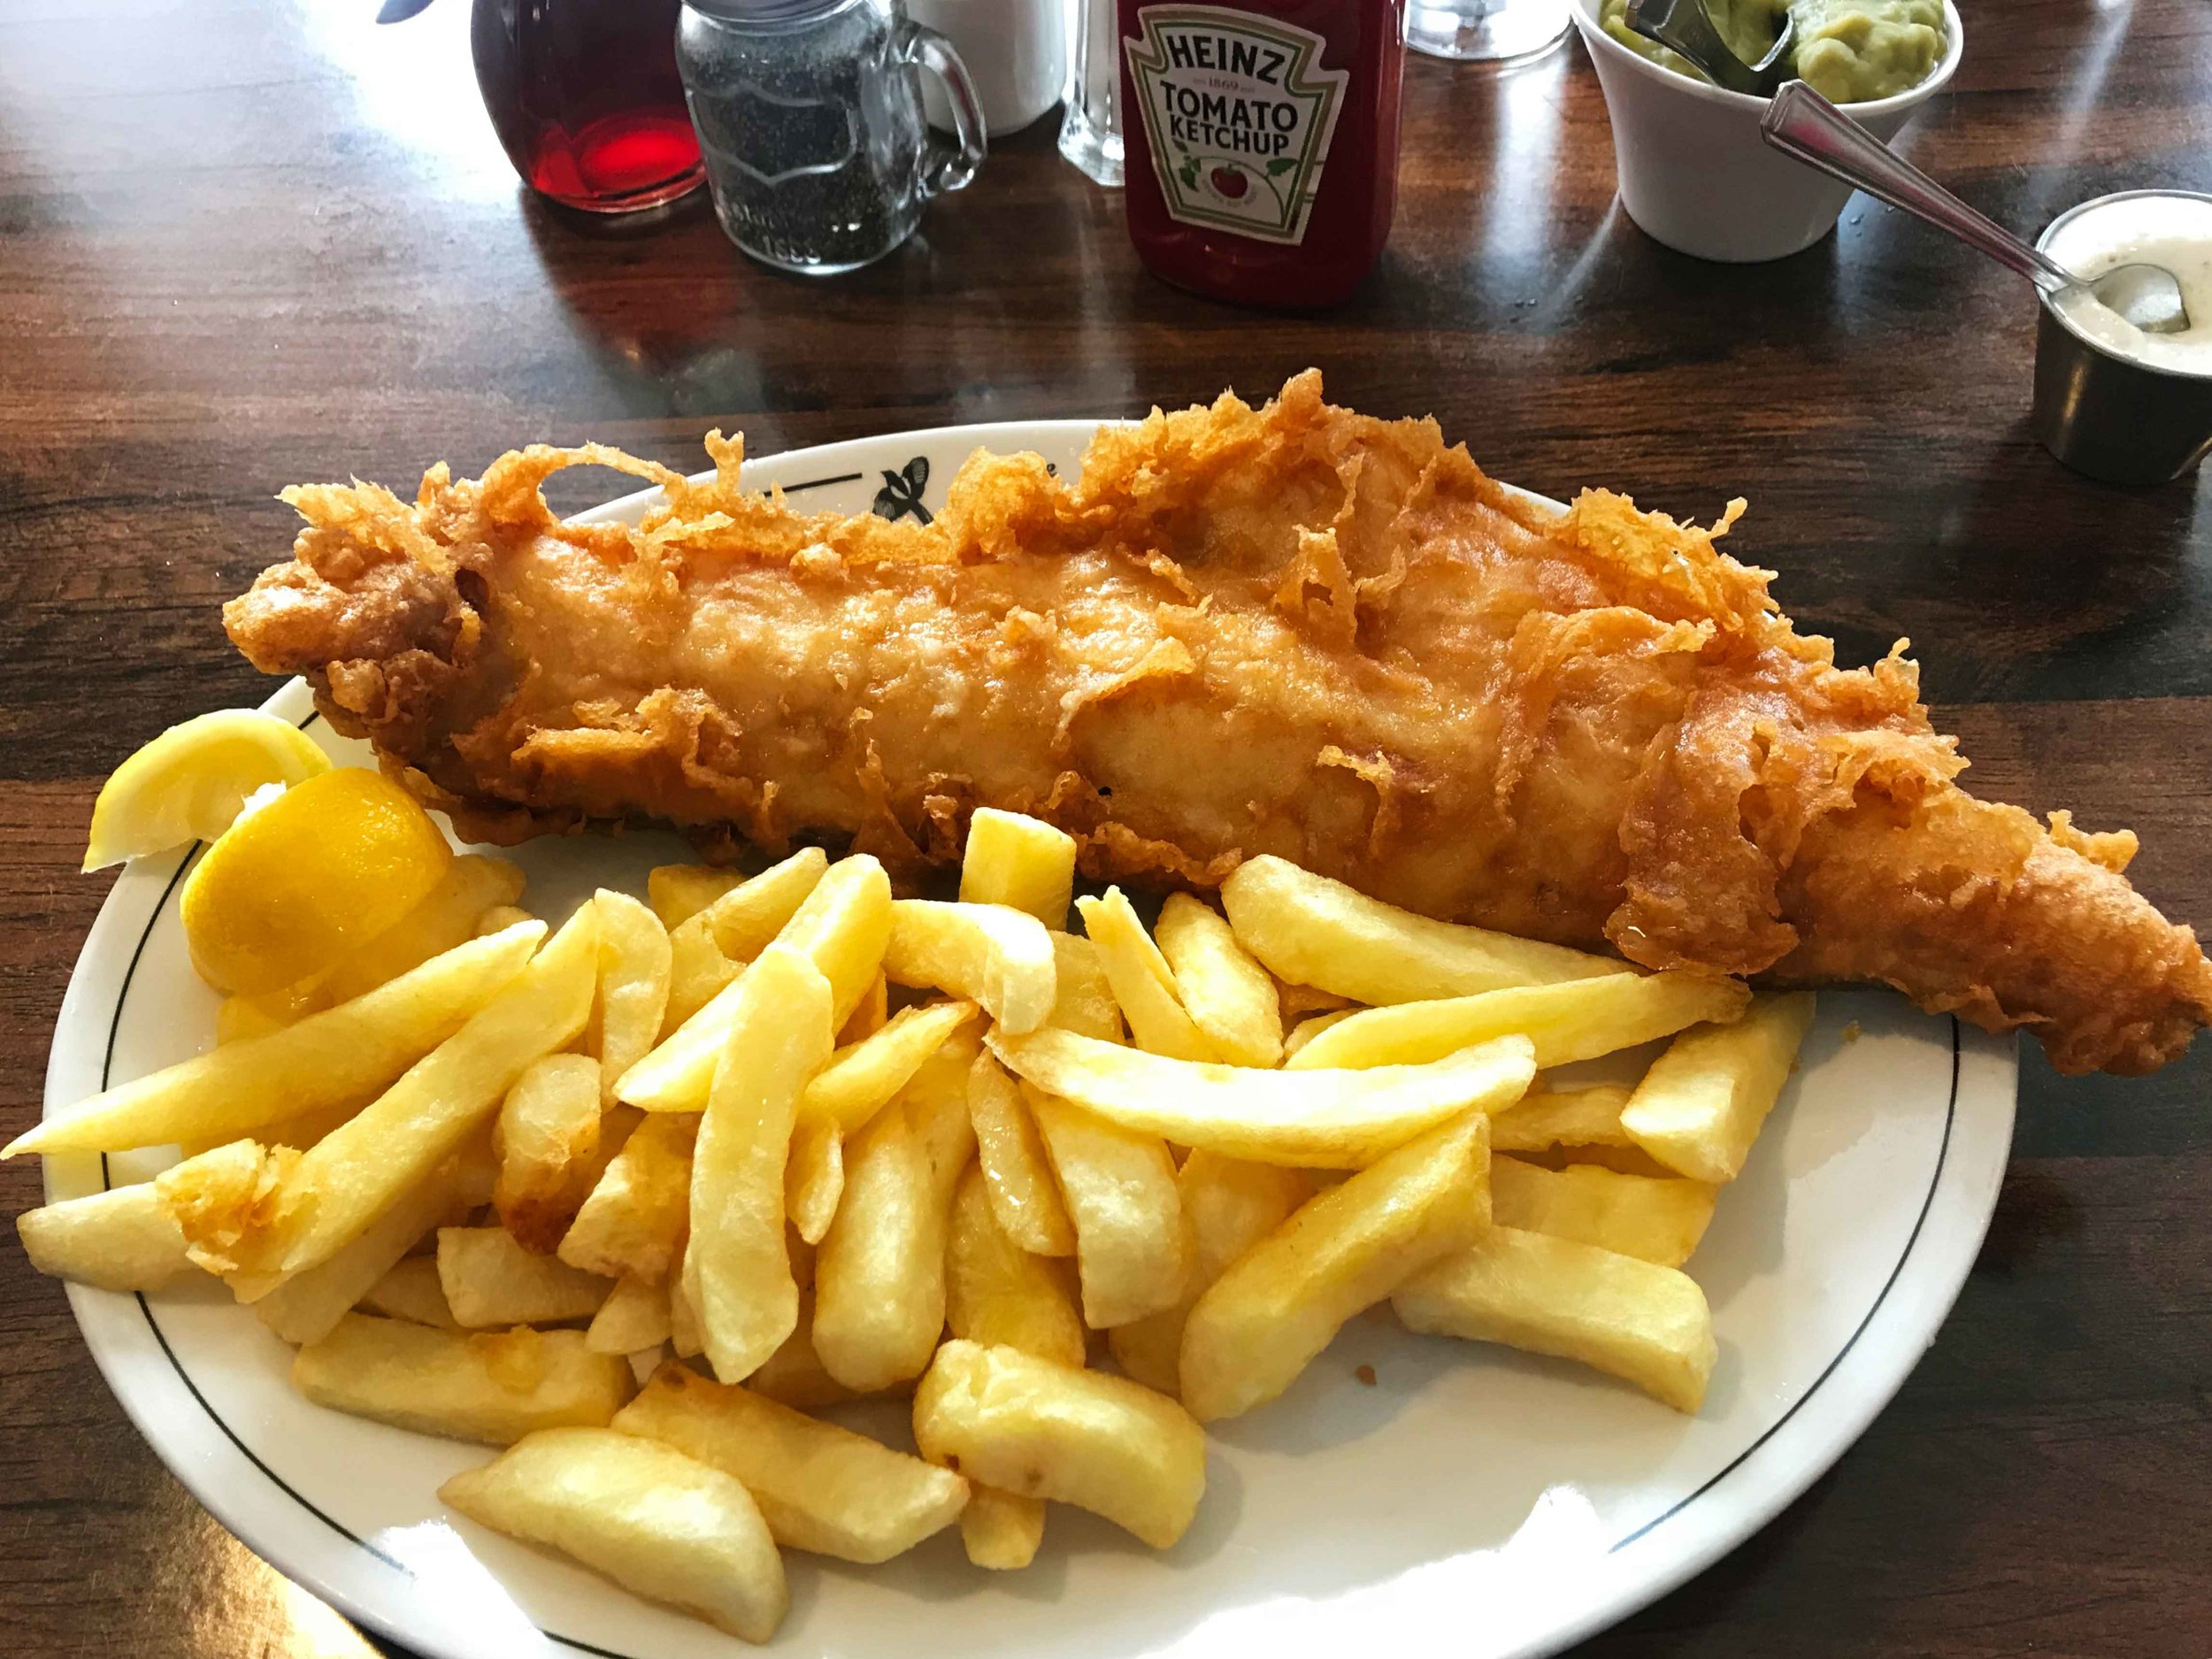 Haddock & chips, 100% delicious